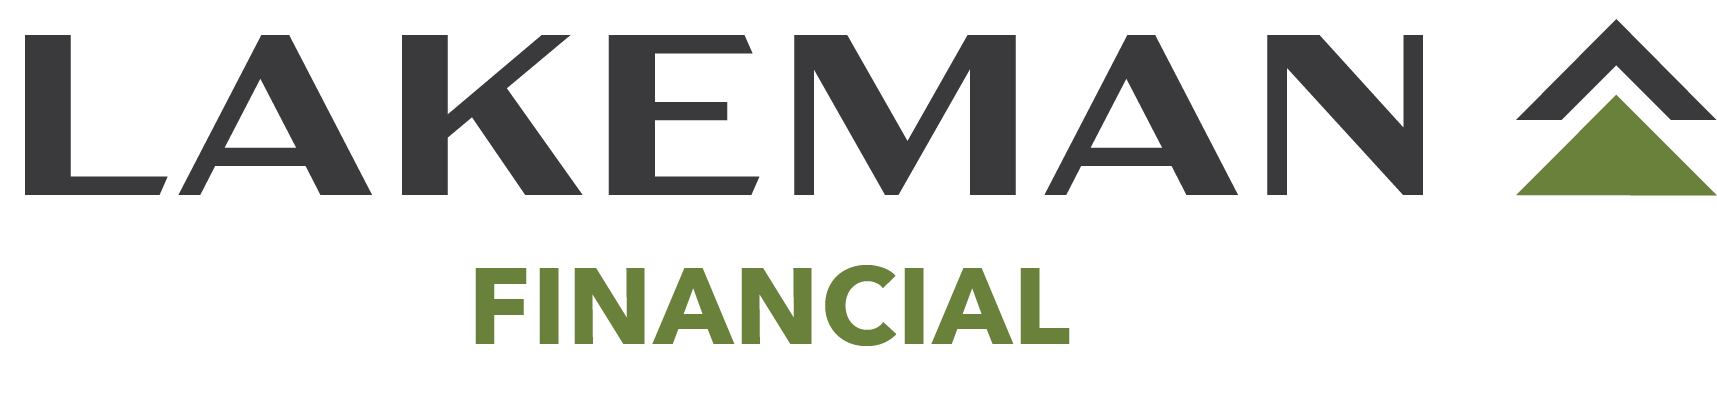 Lakeman Financial